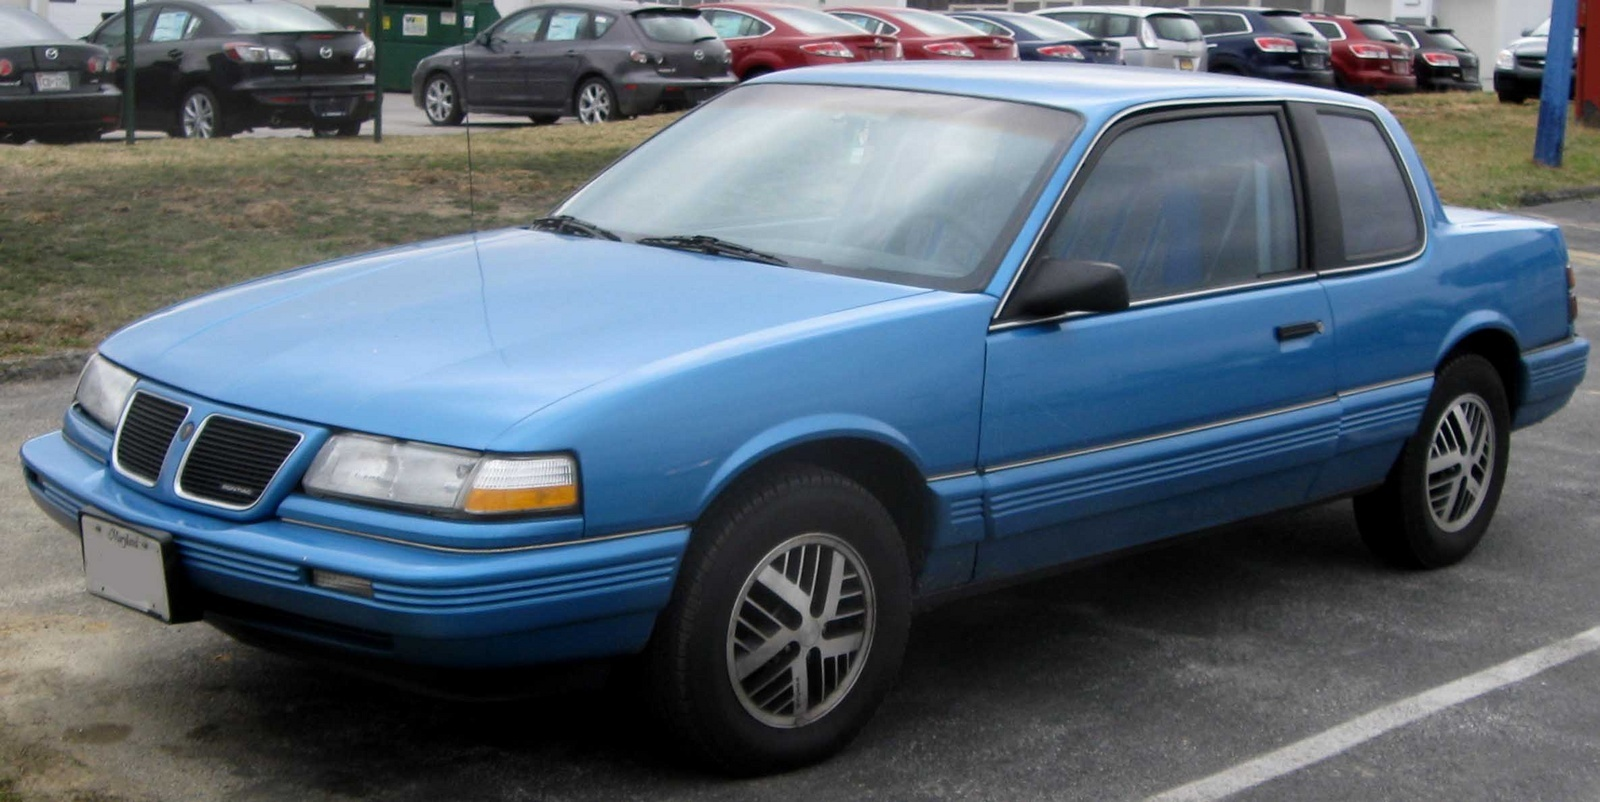 1997 Oldsmobile Cutlass Supreme Cutl